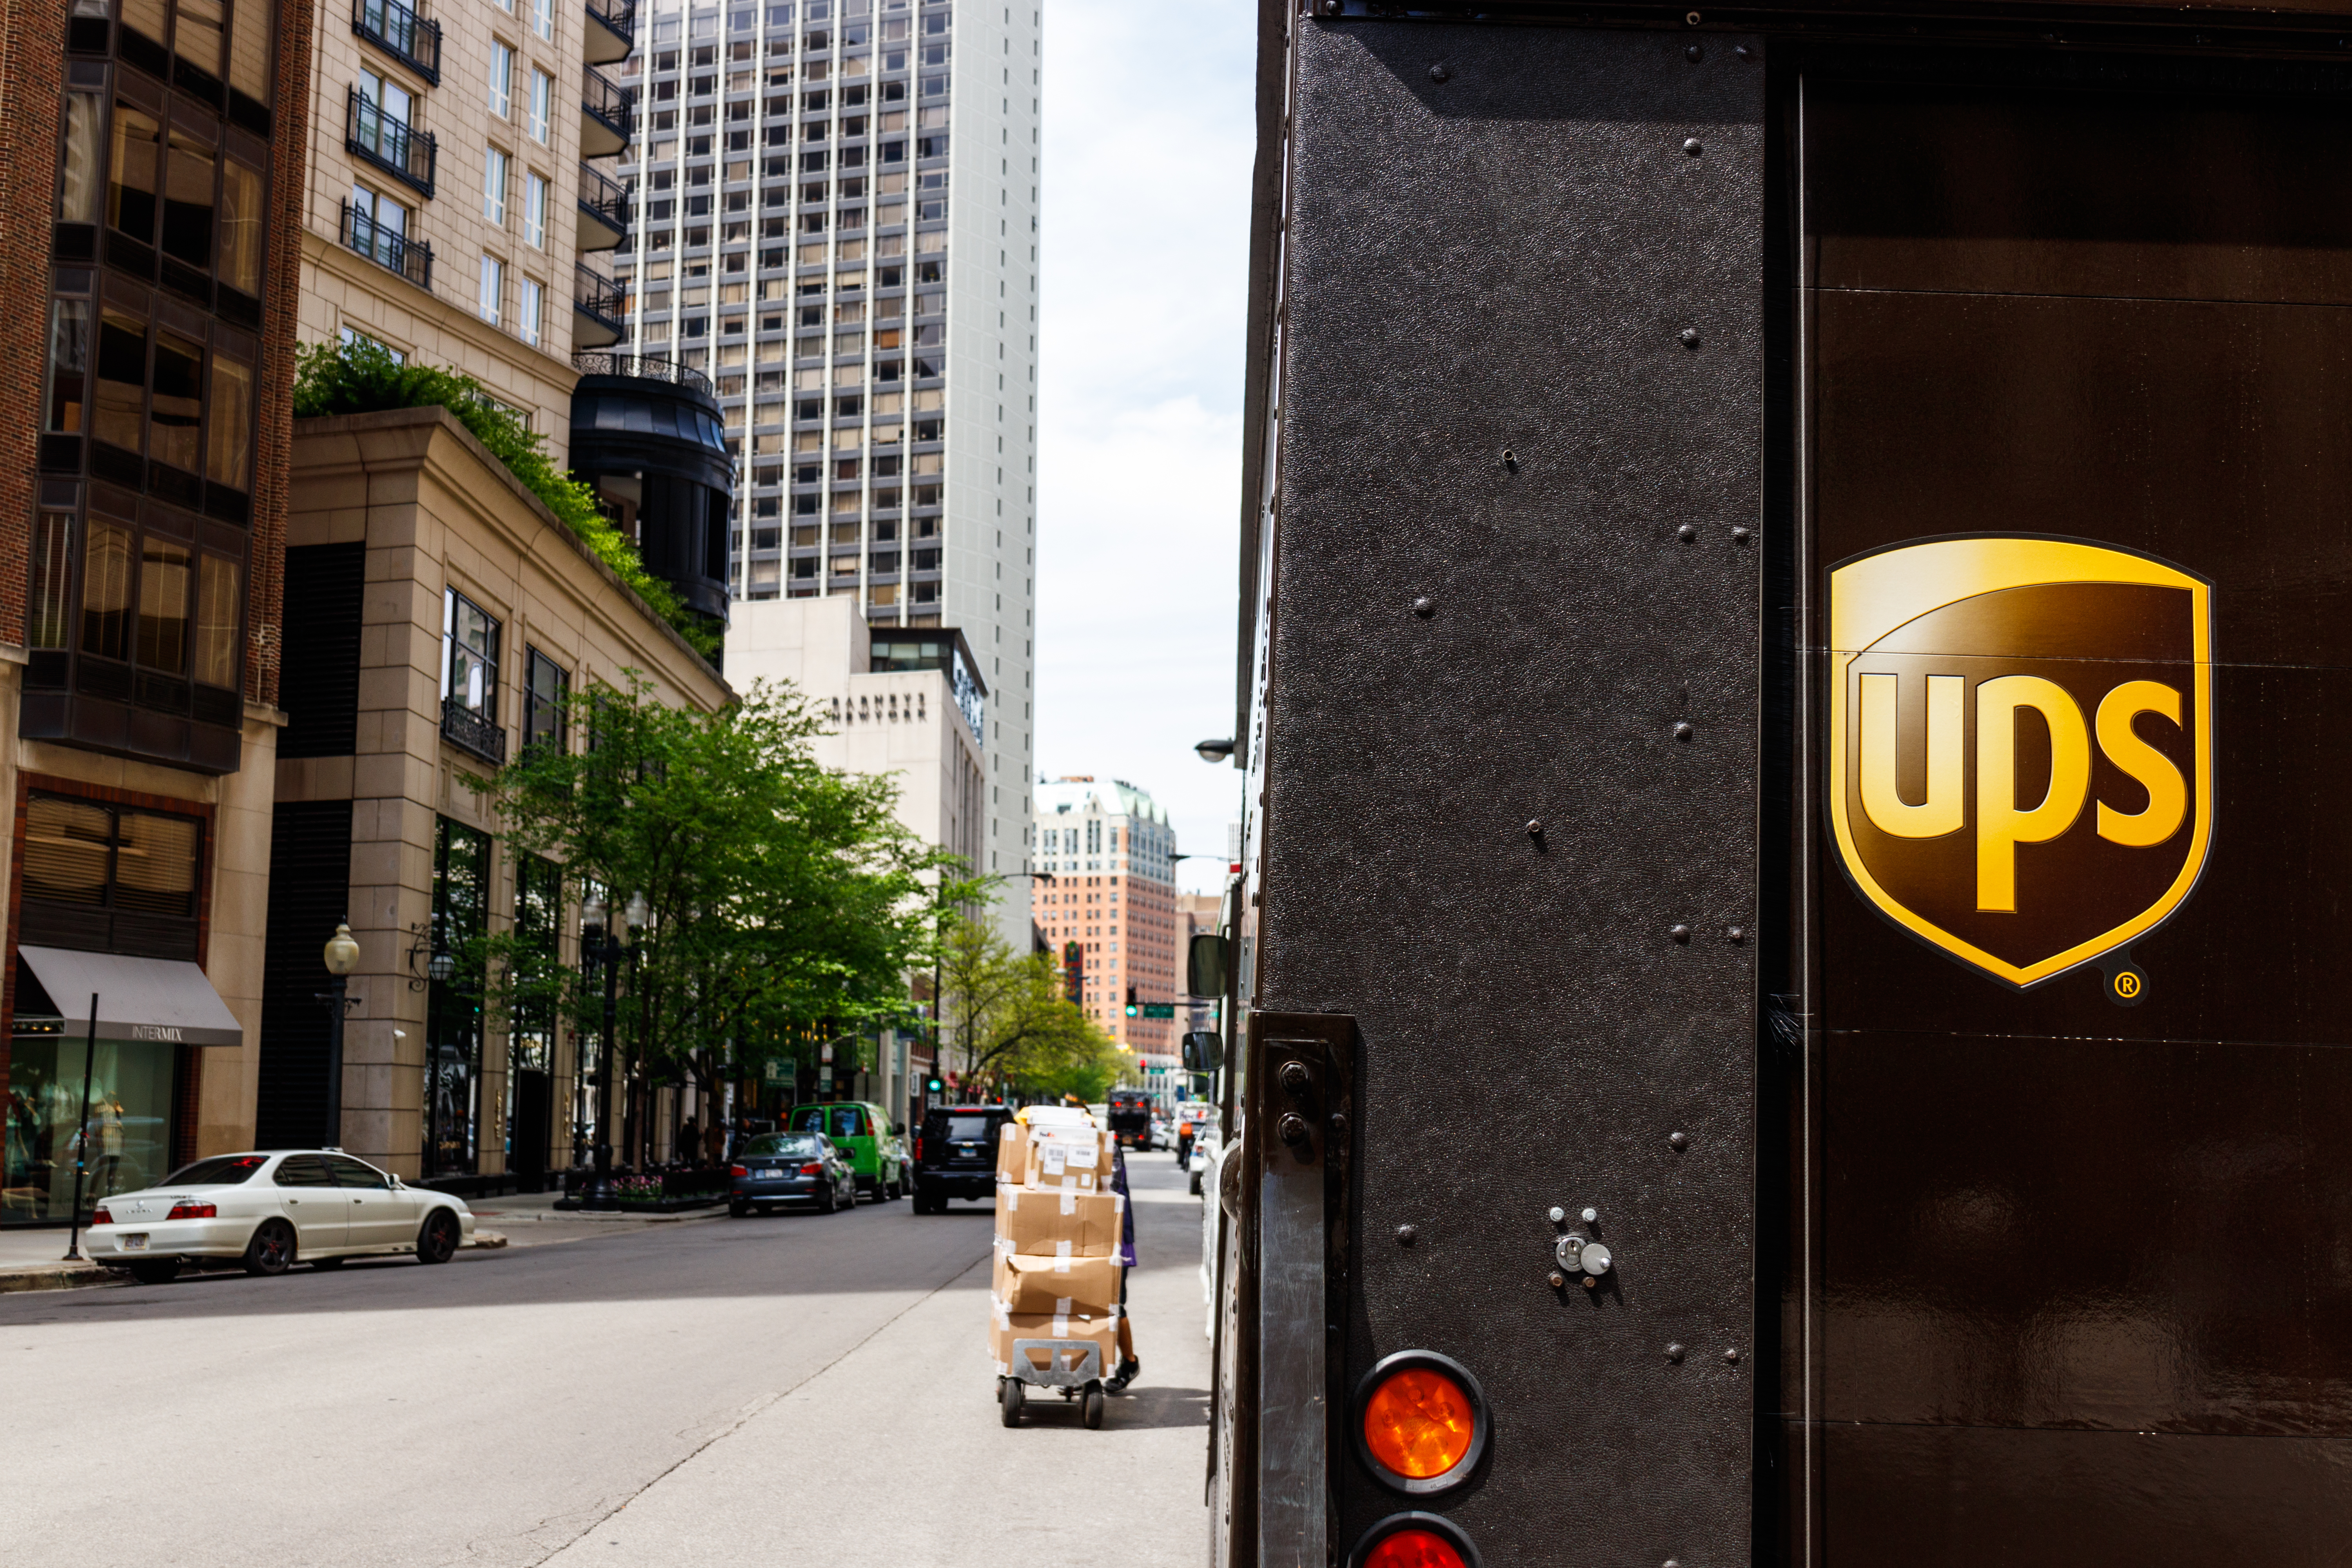 UPS Files For a Patent for Blockchain-based Shipping System